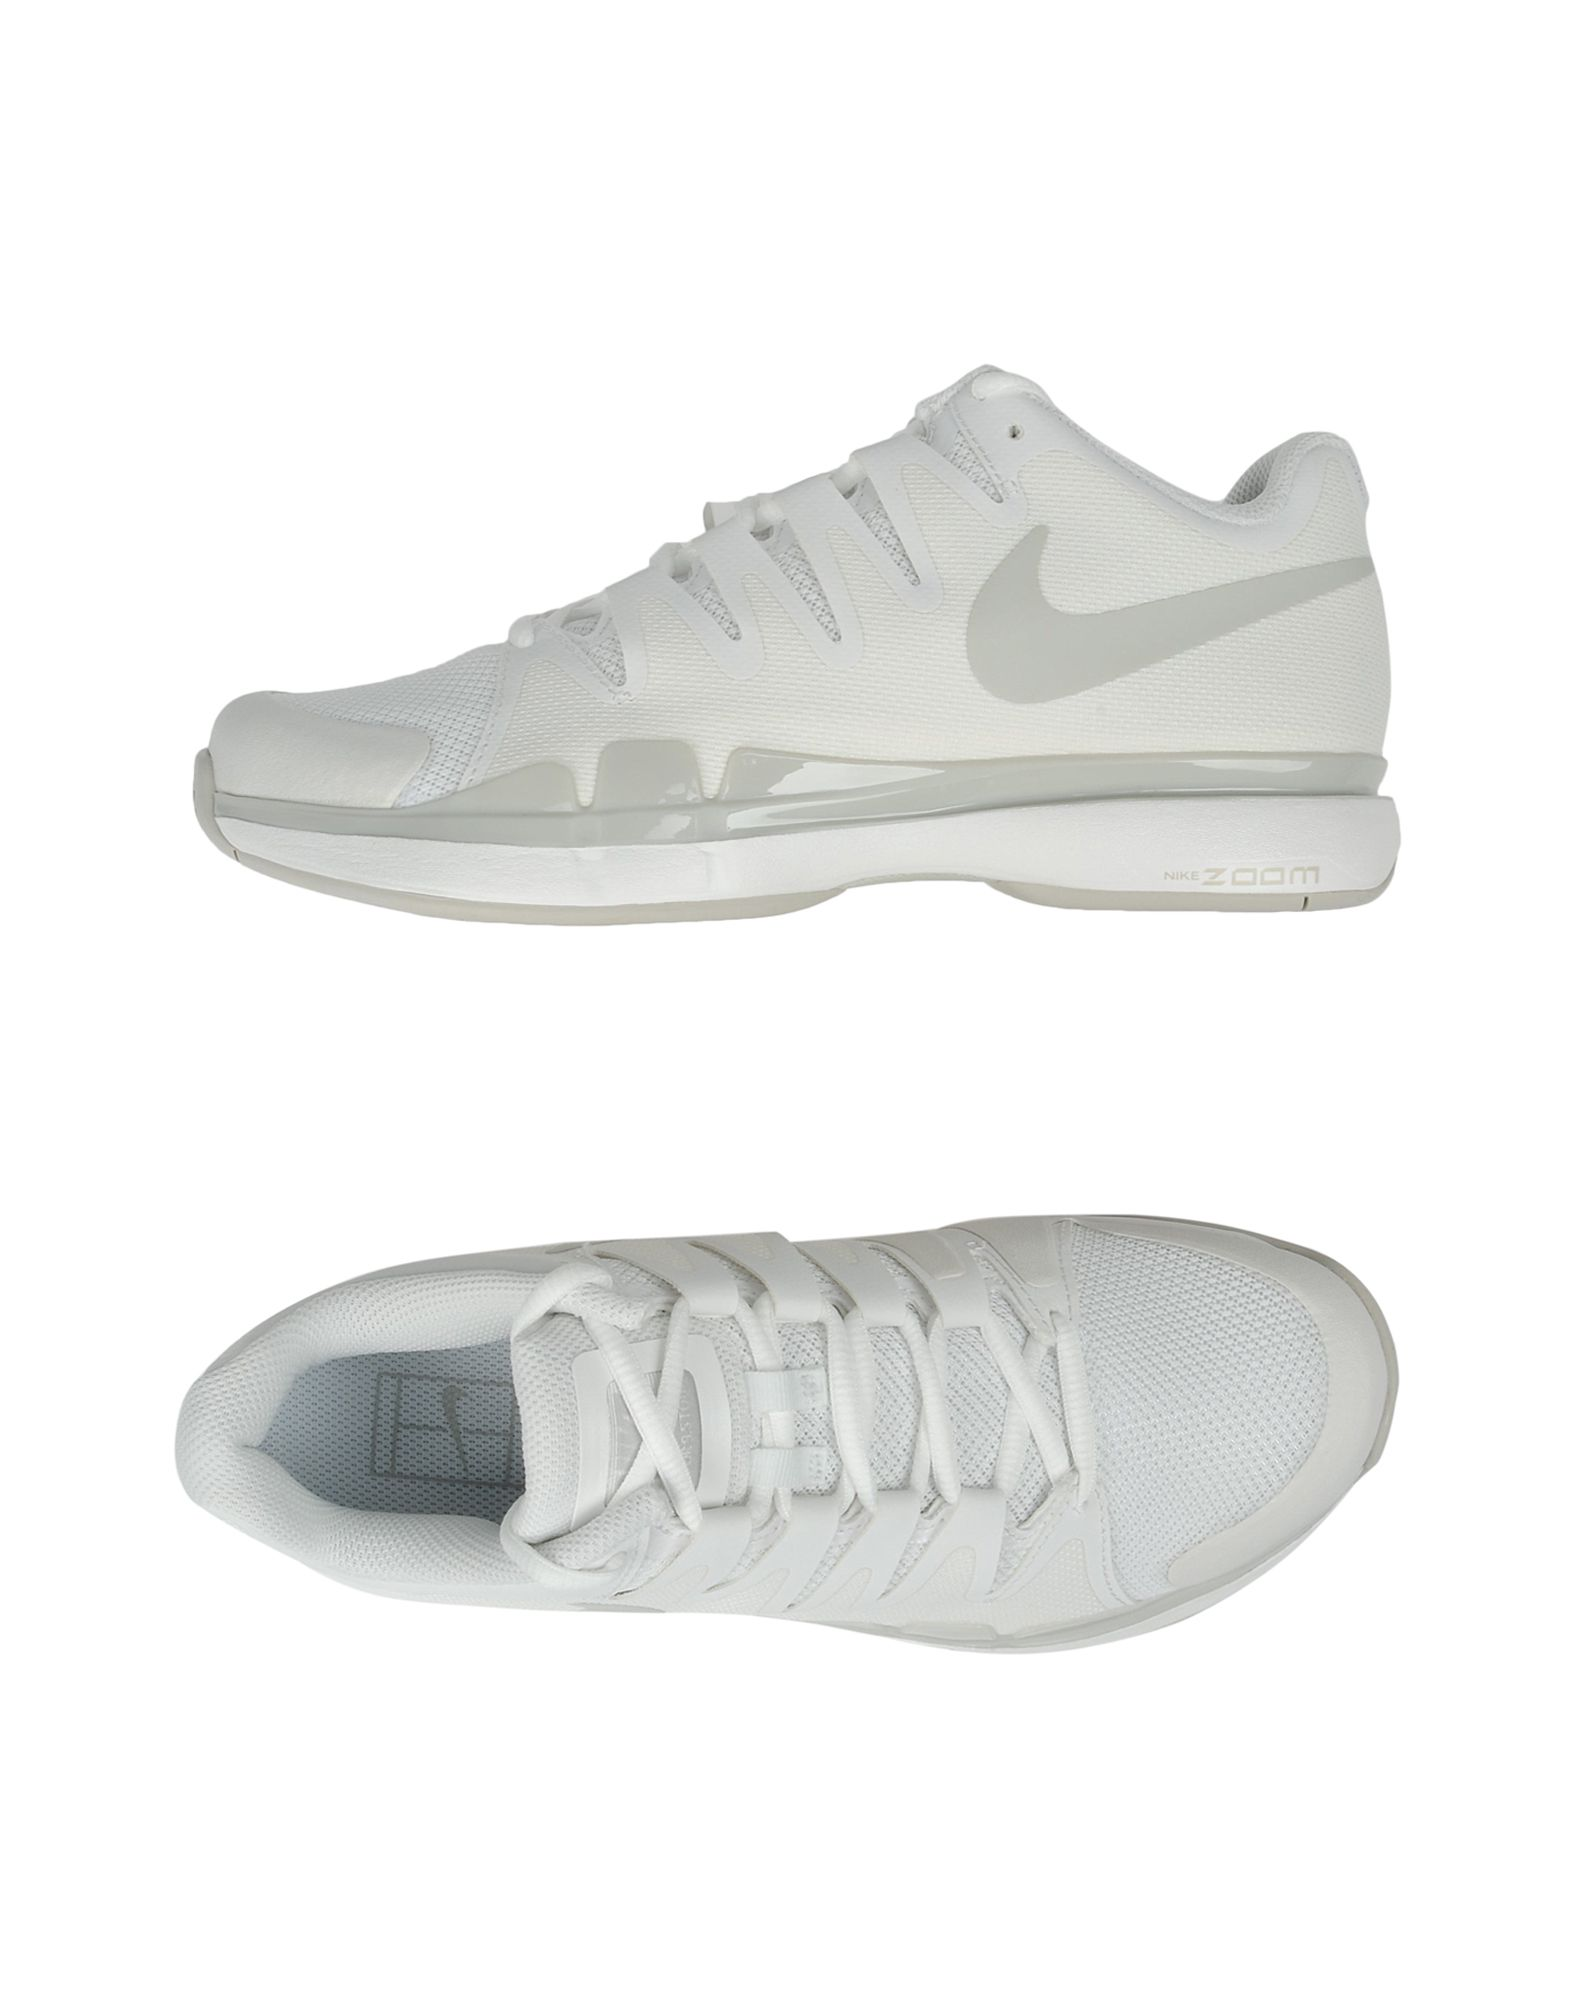 Nike Wmns Nike Zoom Vapor 9.5 Tour  11032794UK